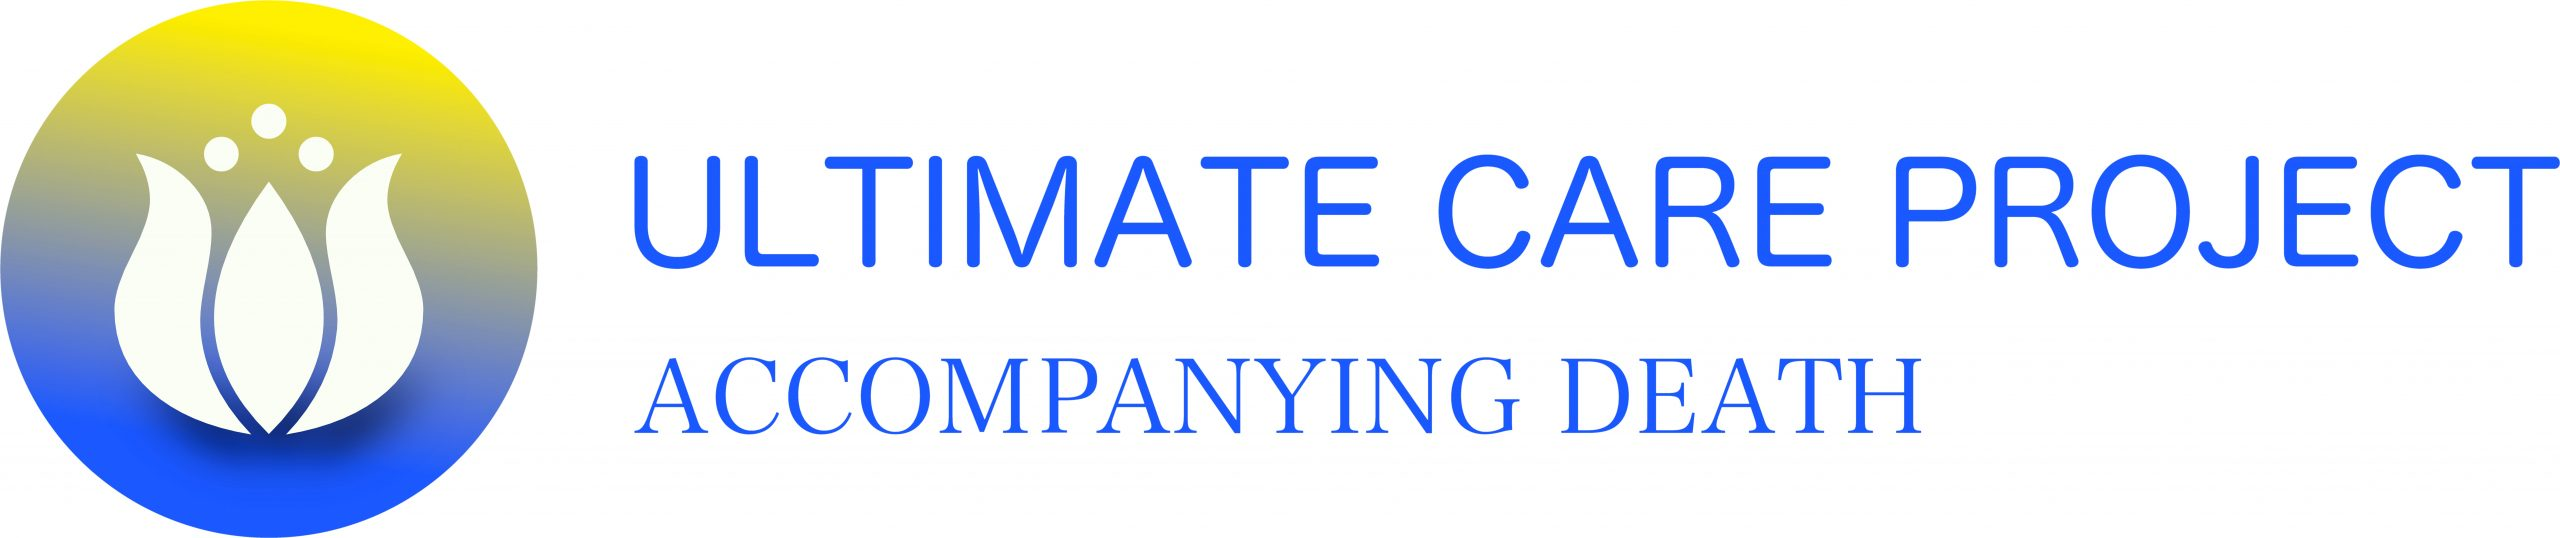 Ultimate Care Project